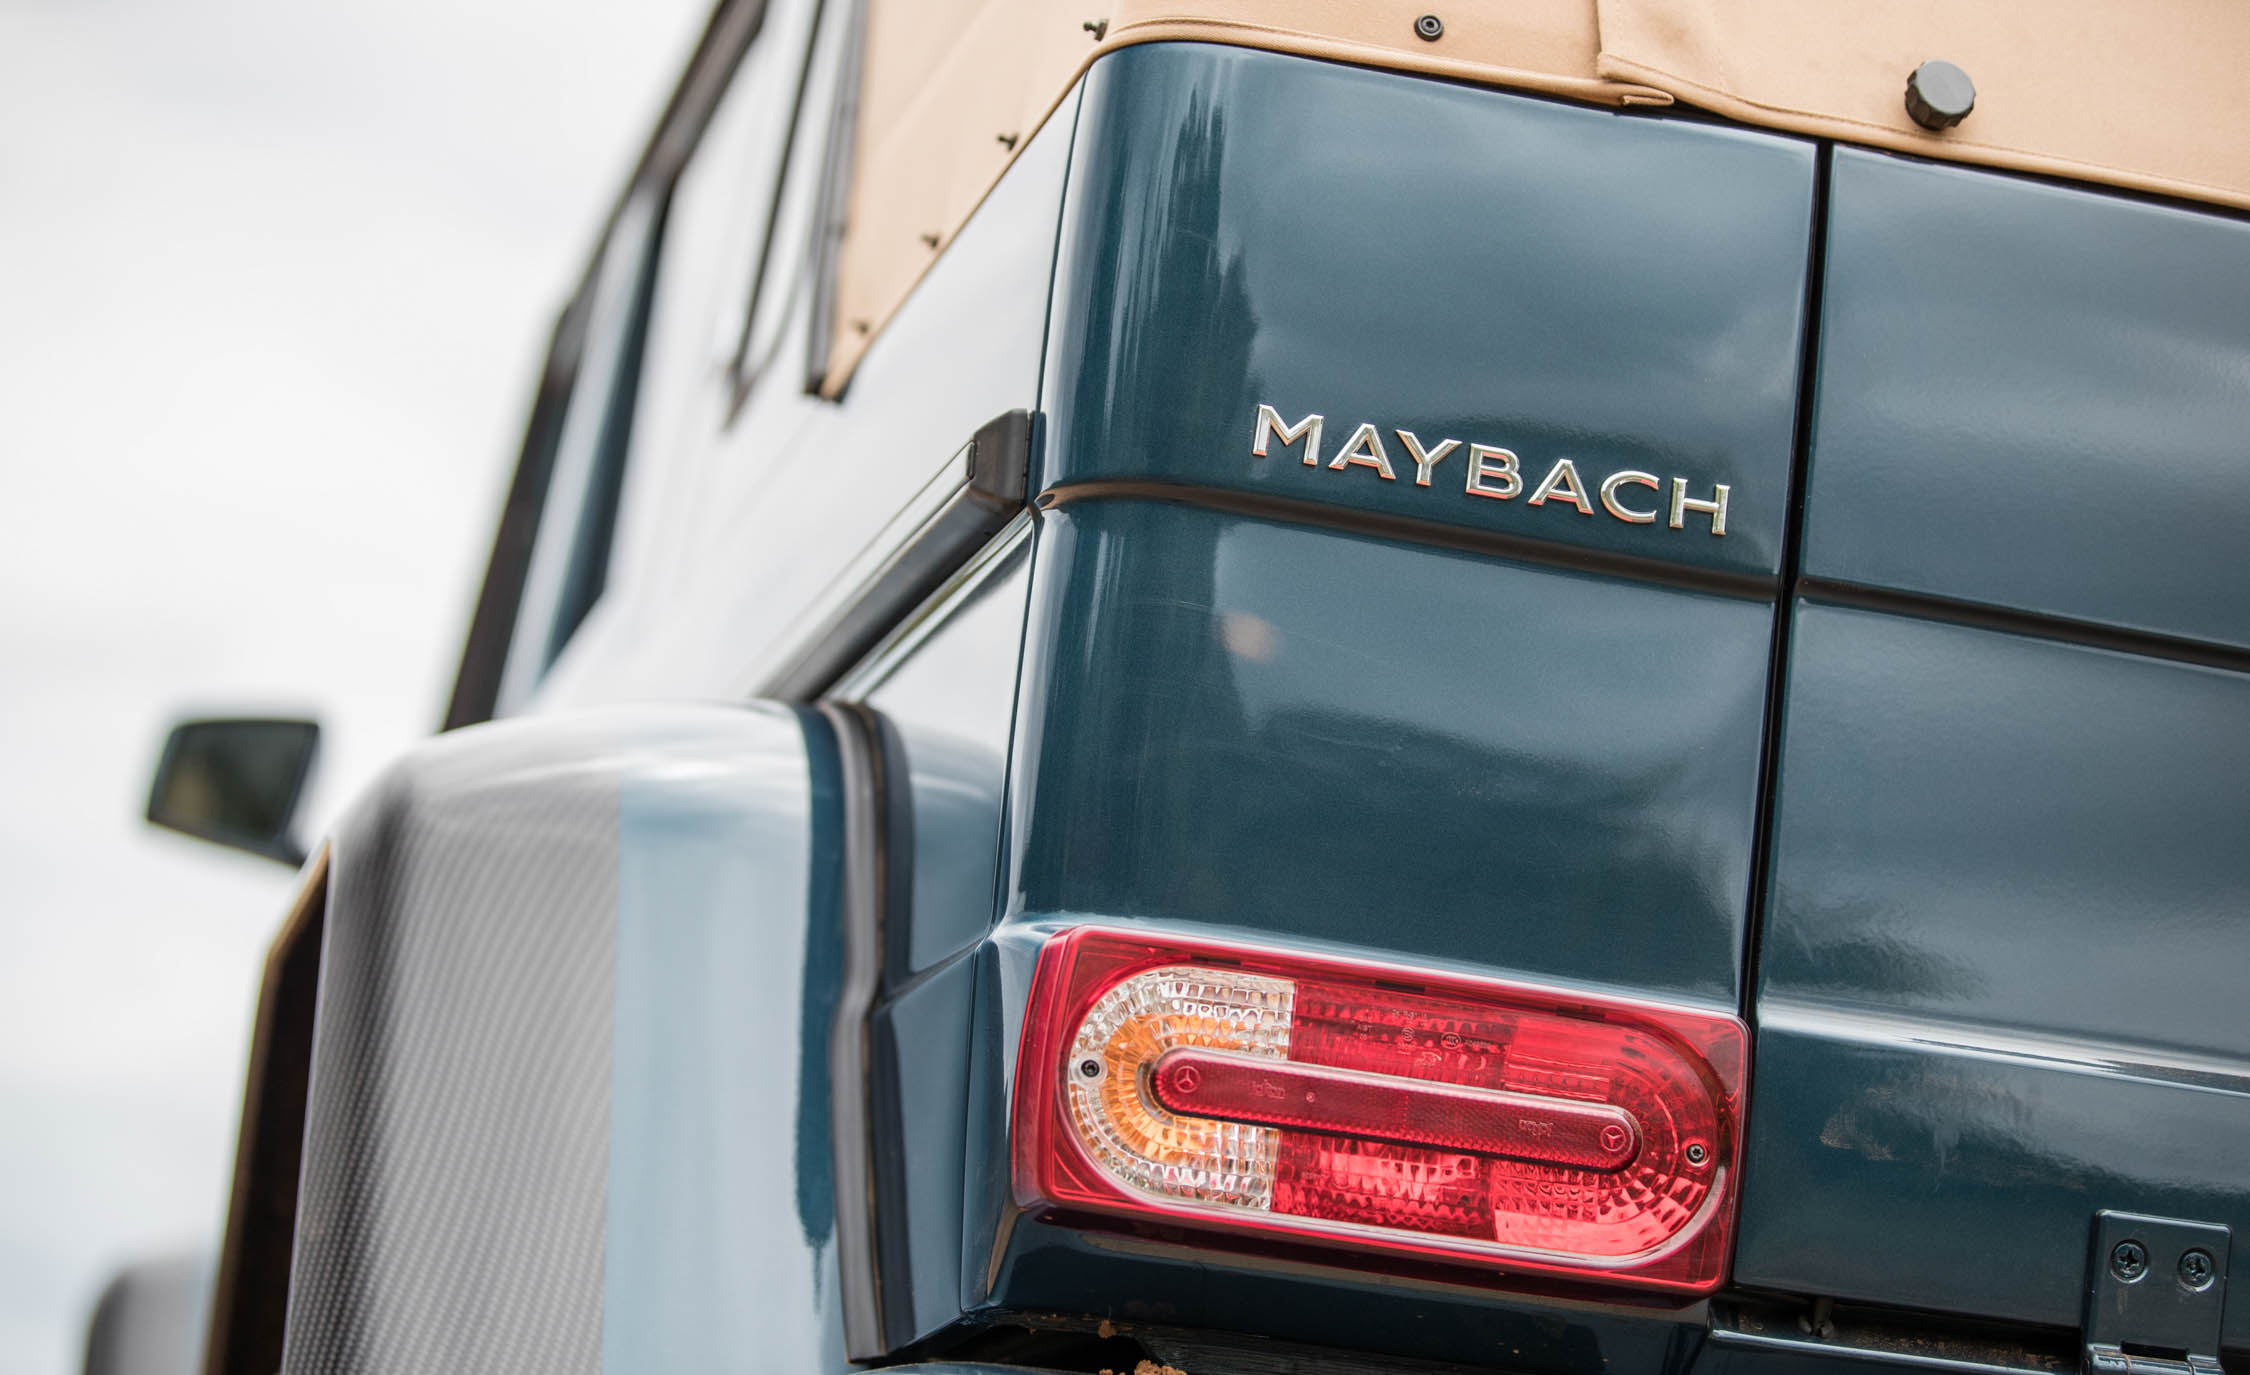 2018 Mercedes Maybach G650 Landaulet Exterior View Taillight (Photo 15 of 52)